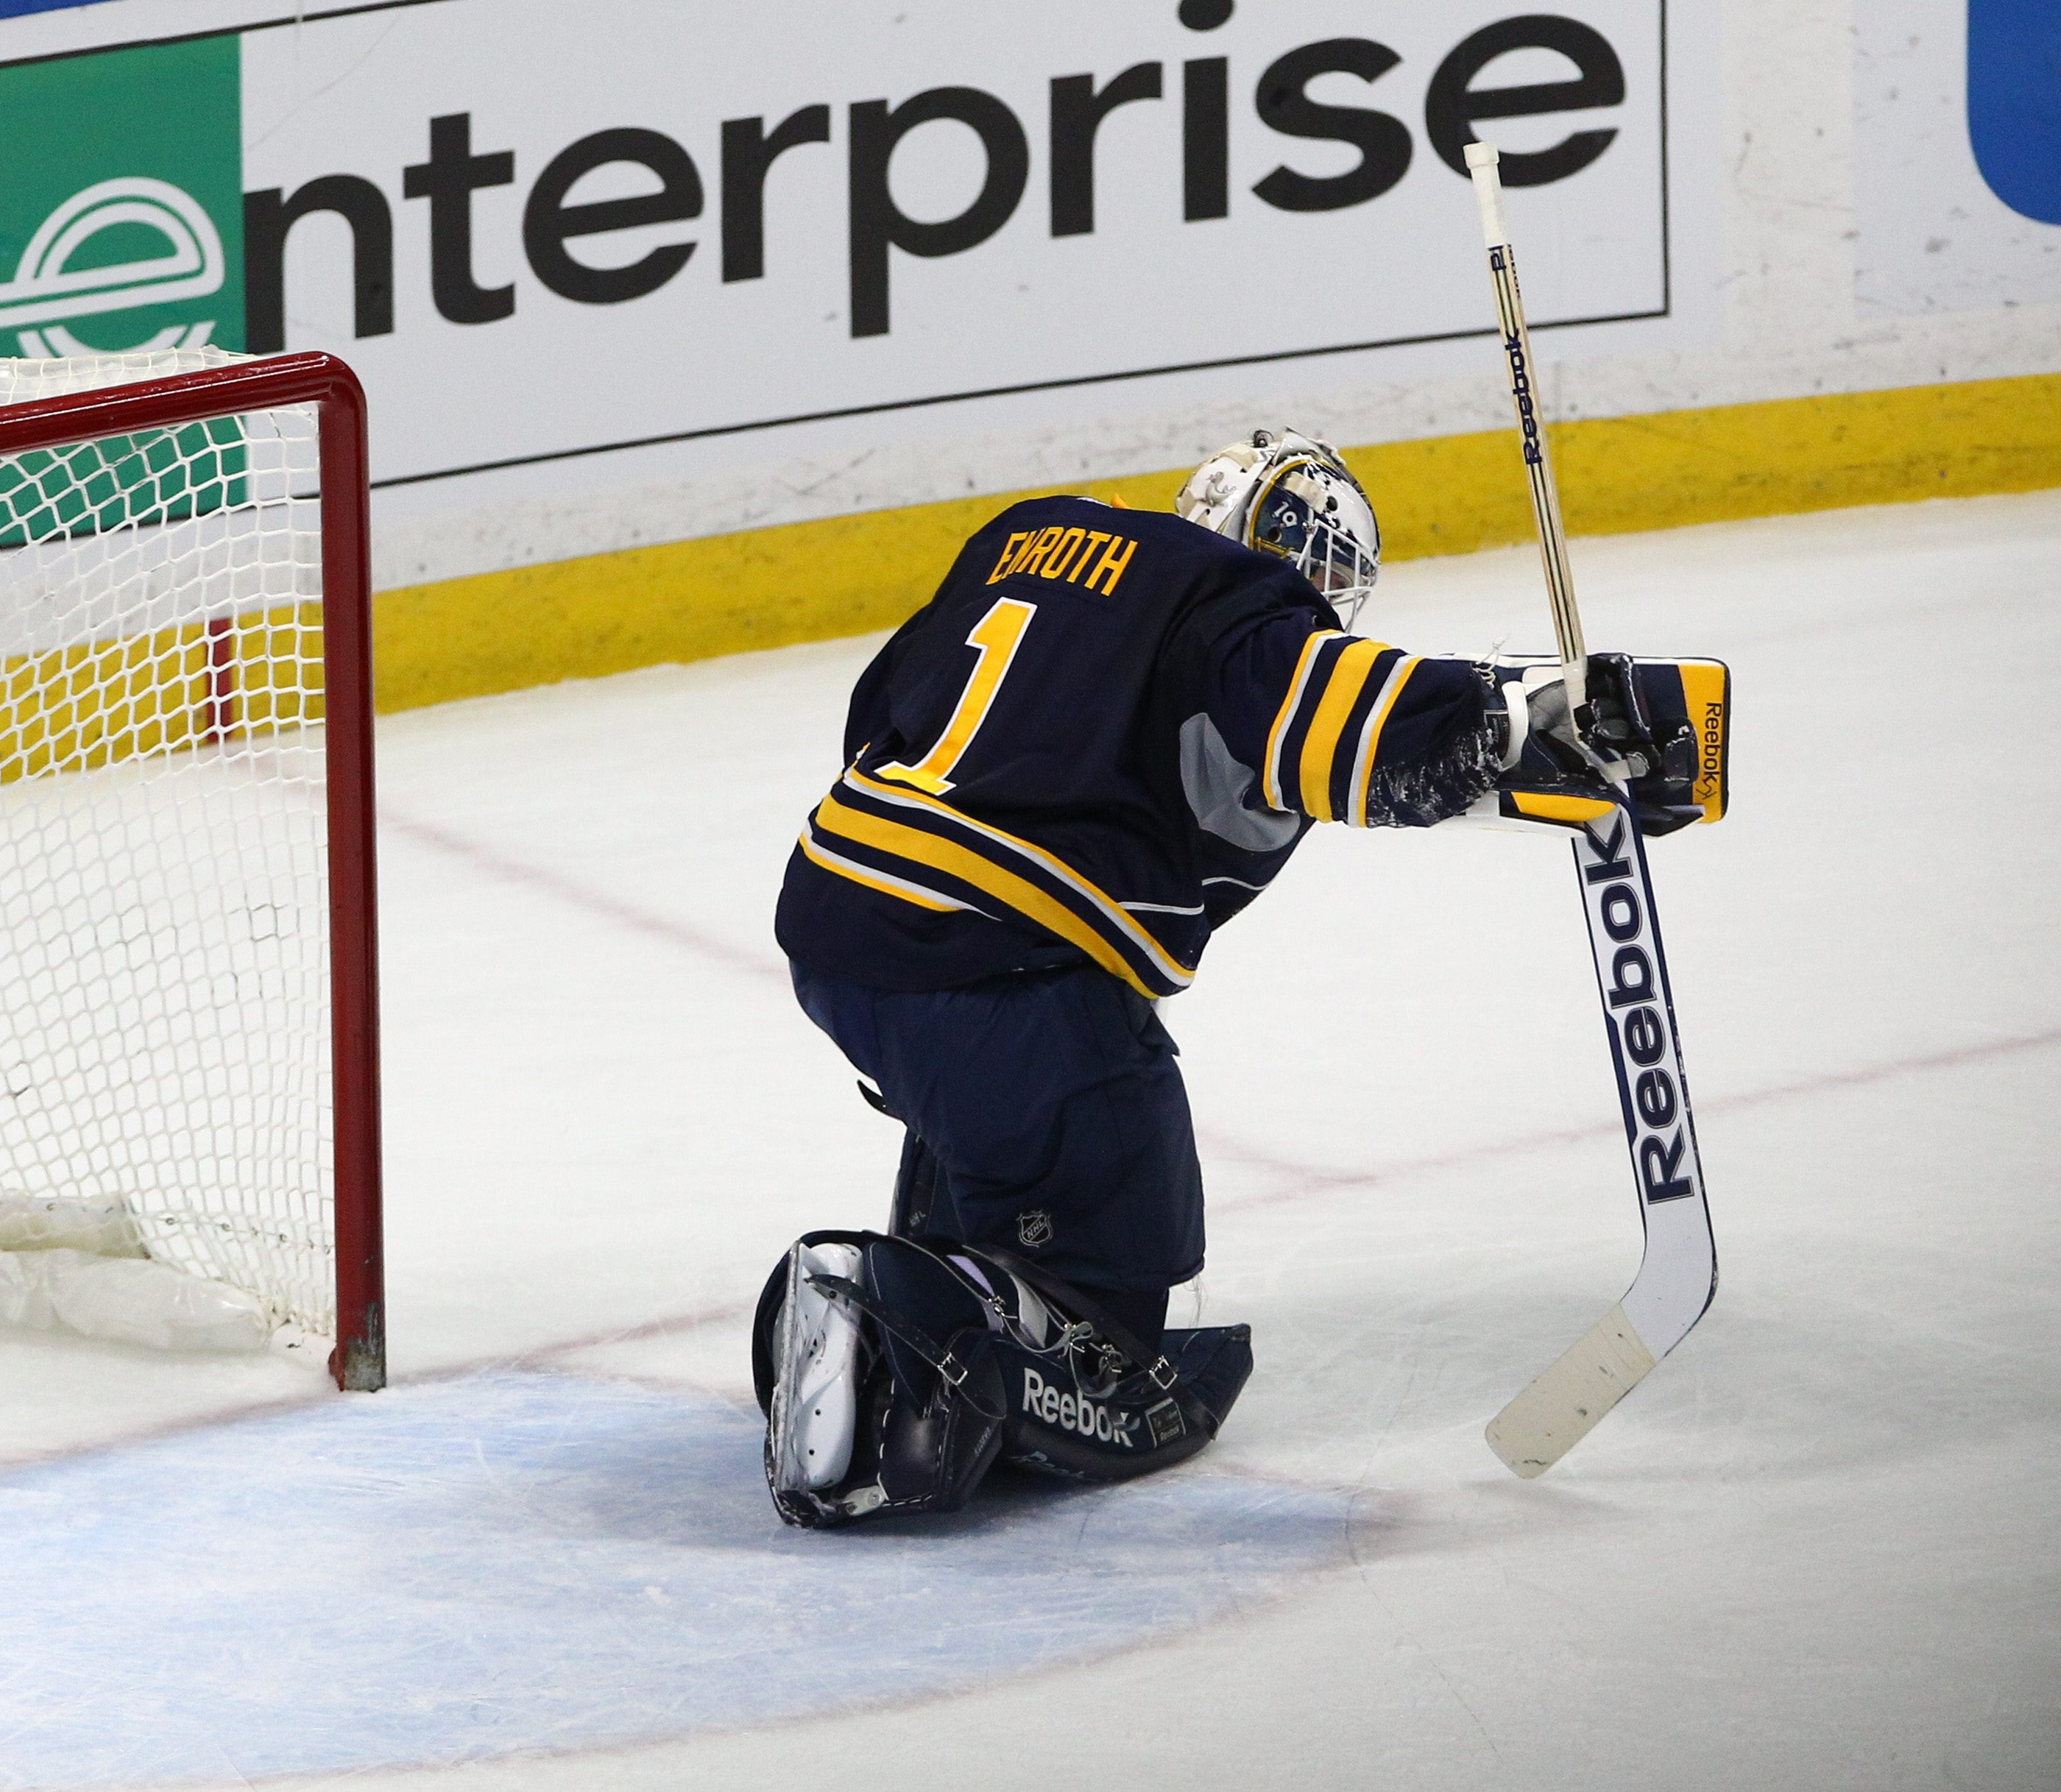 Jhonas Enroth slumps after giving up the game-winning goal in overtime to Mike Green.